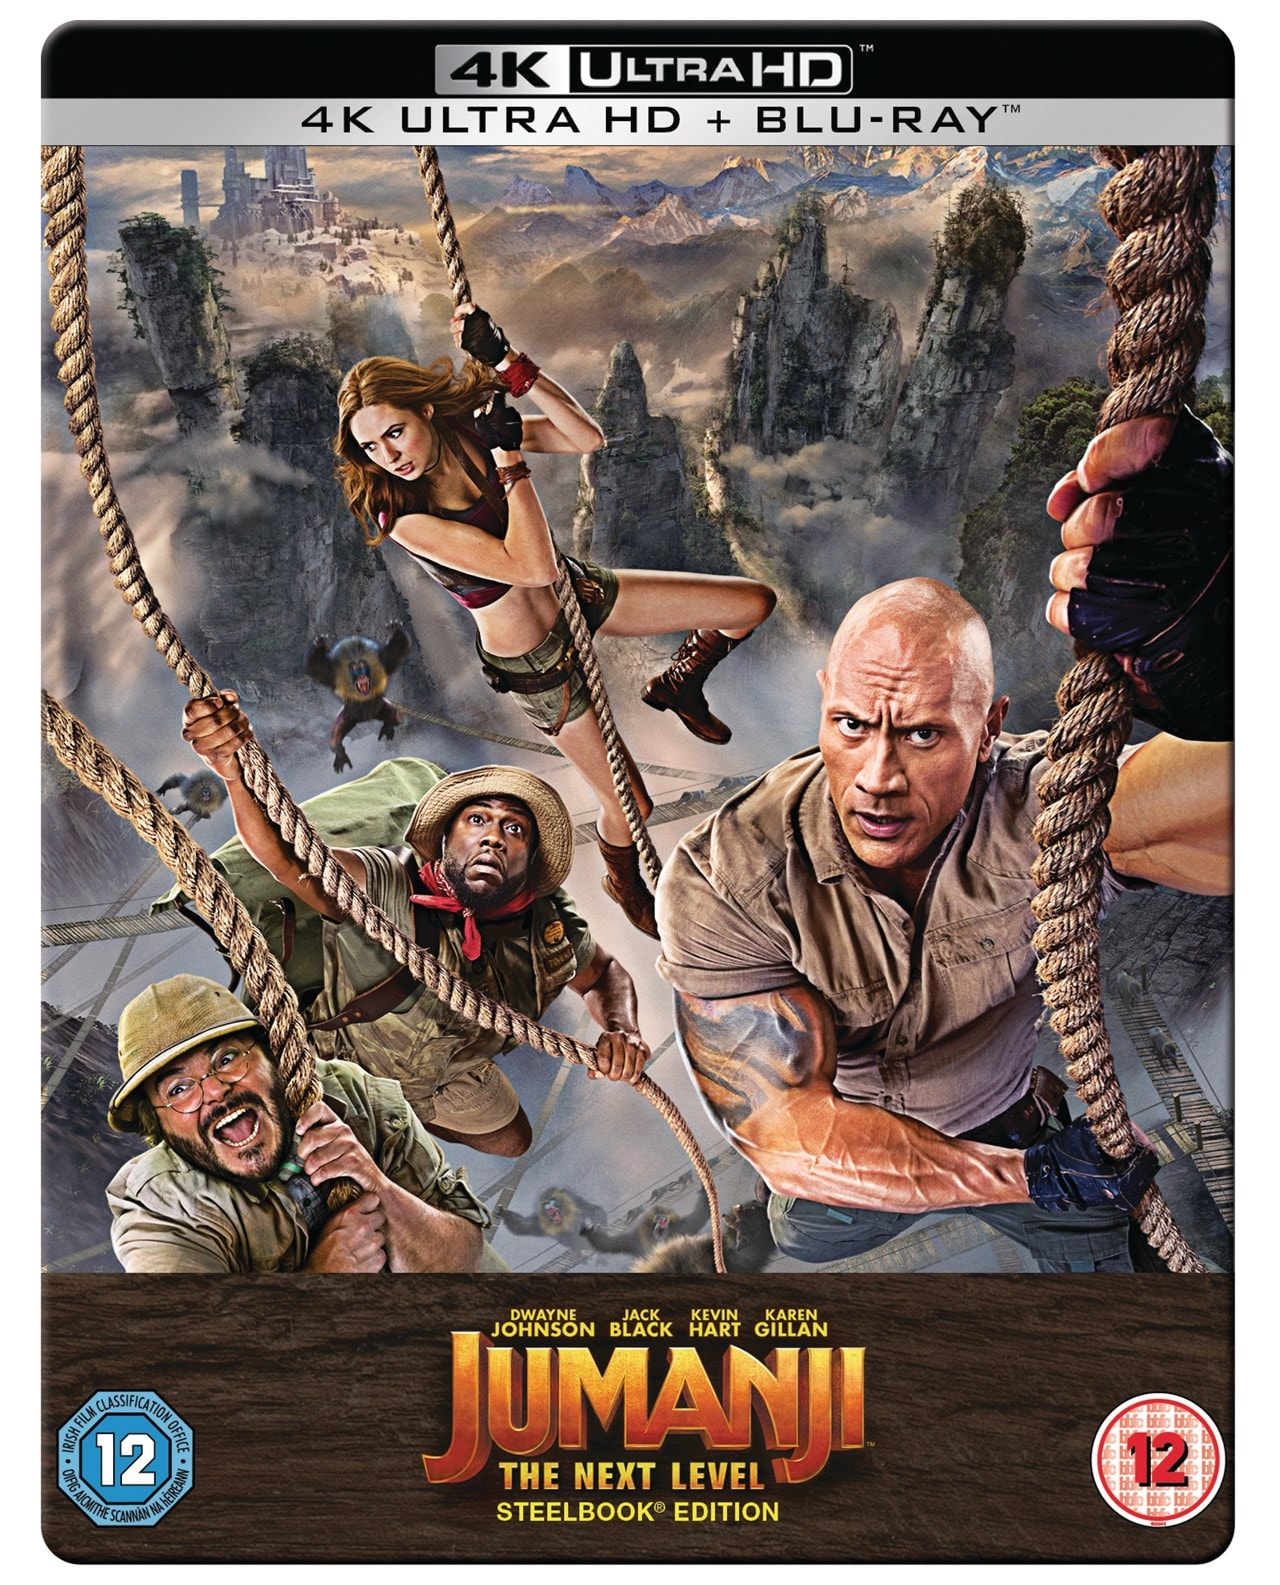 Jumanji: The Next Level Limited Edition Steelbook - 1